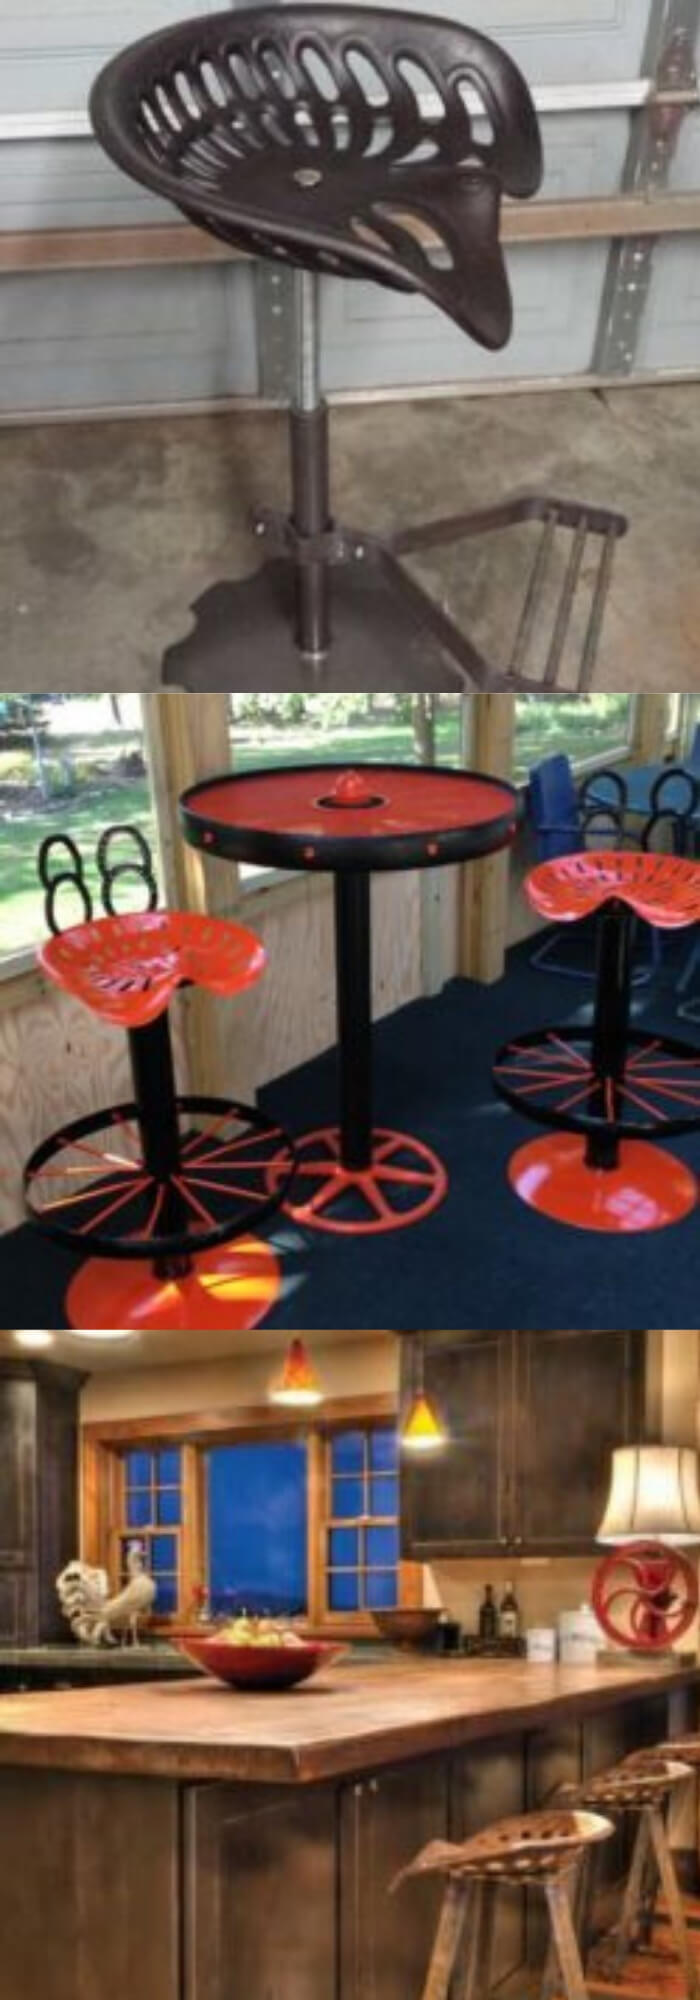 Tractor Seat Bar Stool | Best DIY Repurposed Garden Tools Ideas | Garden Craft Ideas